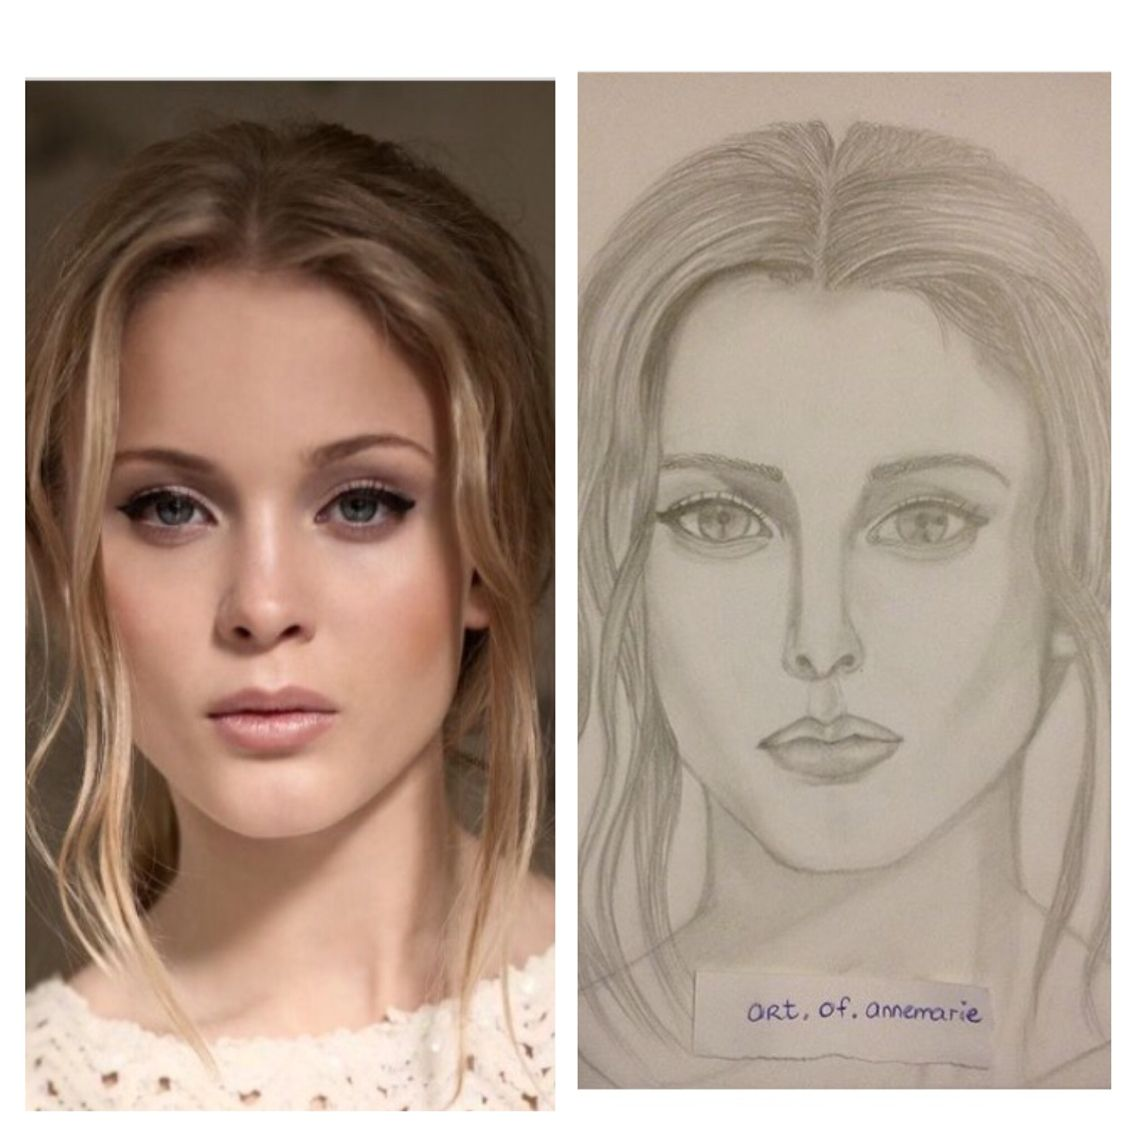 Zara larsson portrait pencil drawing zara larson pinterest zara larsson portrait pencil drawing altavistaventures Images